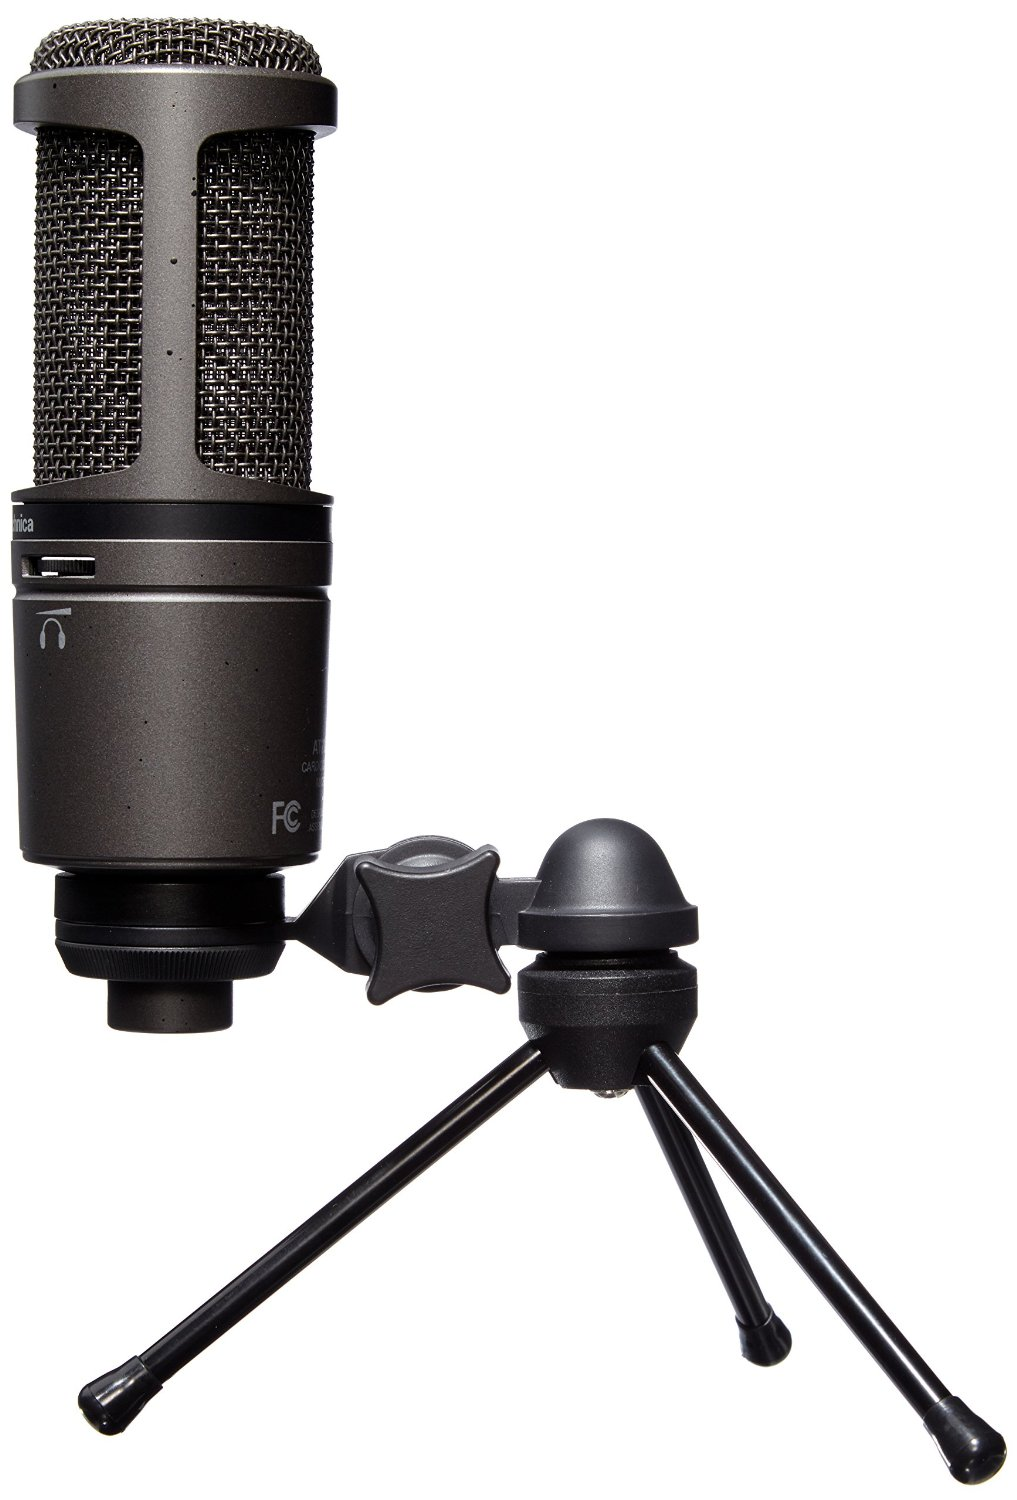 Best Budget Microphones - Get a Top 20 Podcast Microphone for Under $200 - Audio-Technica AT2020USB PLUS Cardioid Condenser USB Microphone